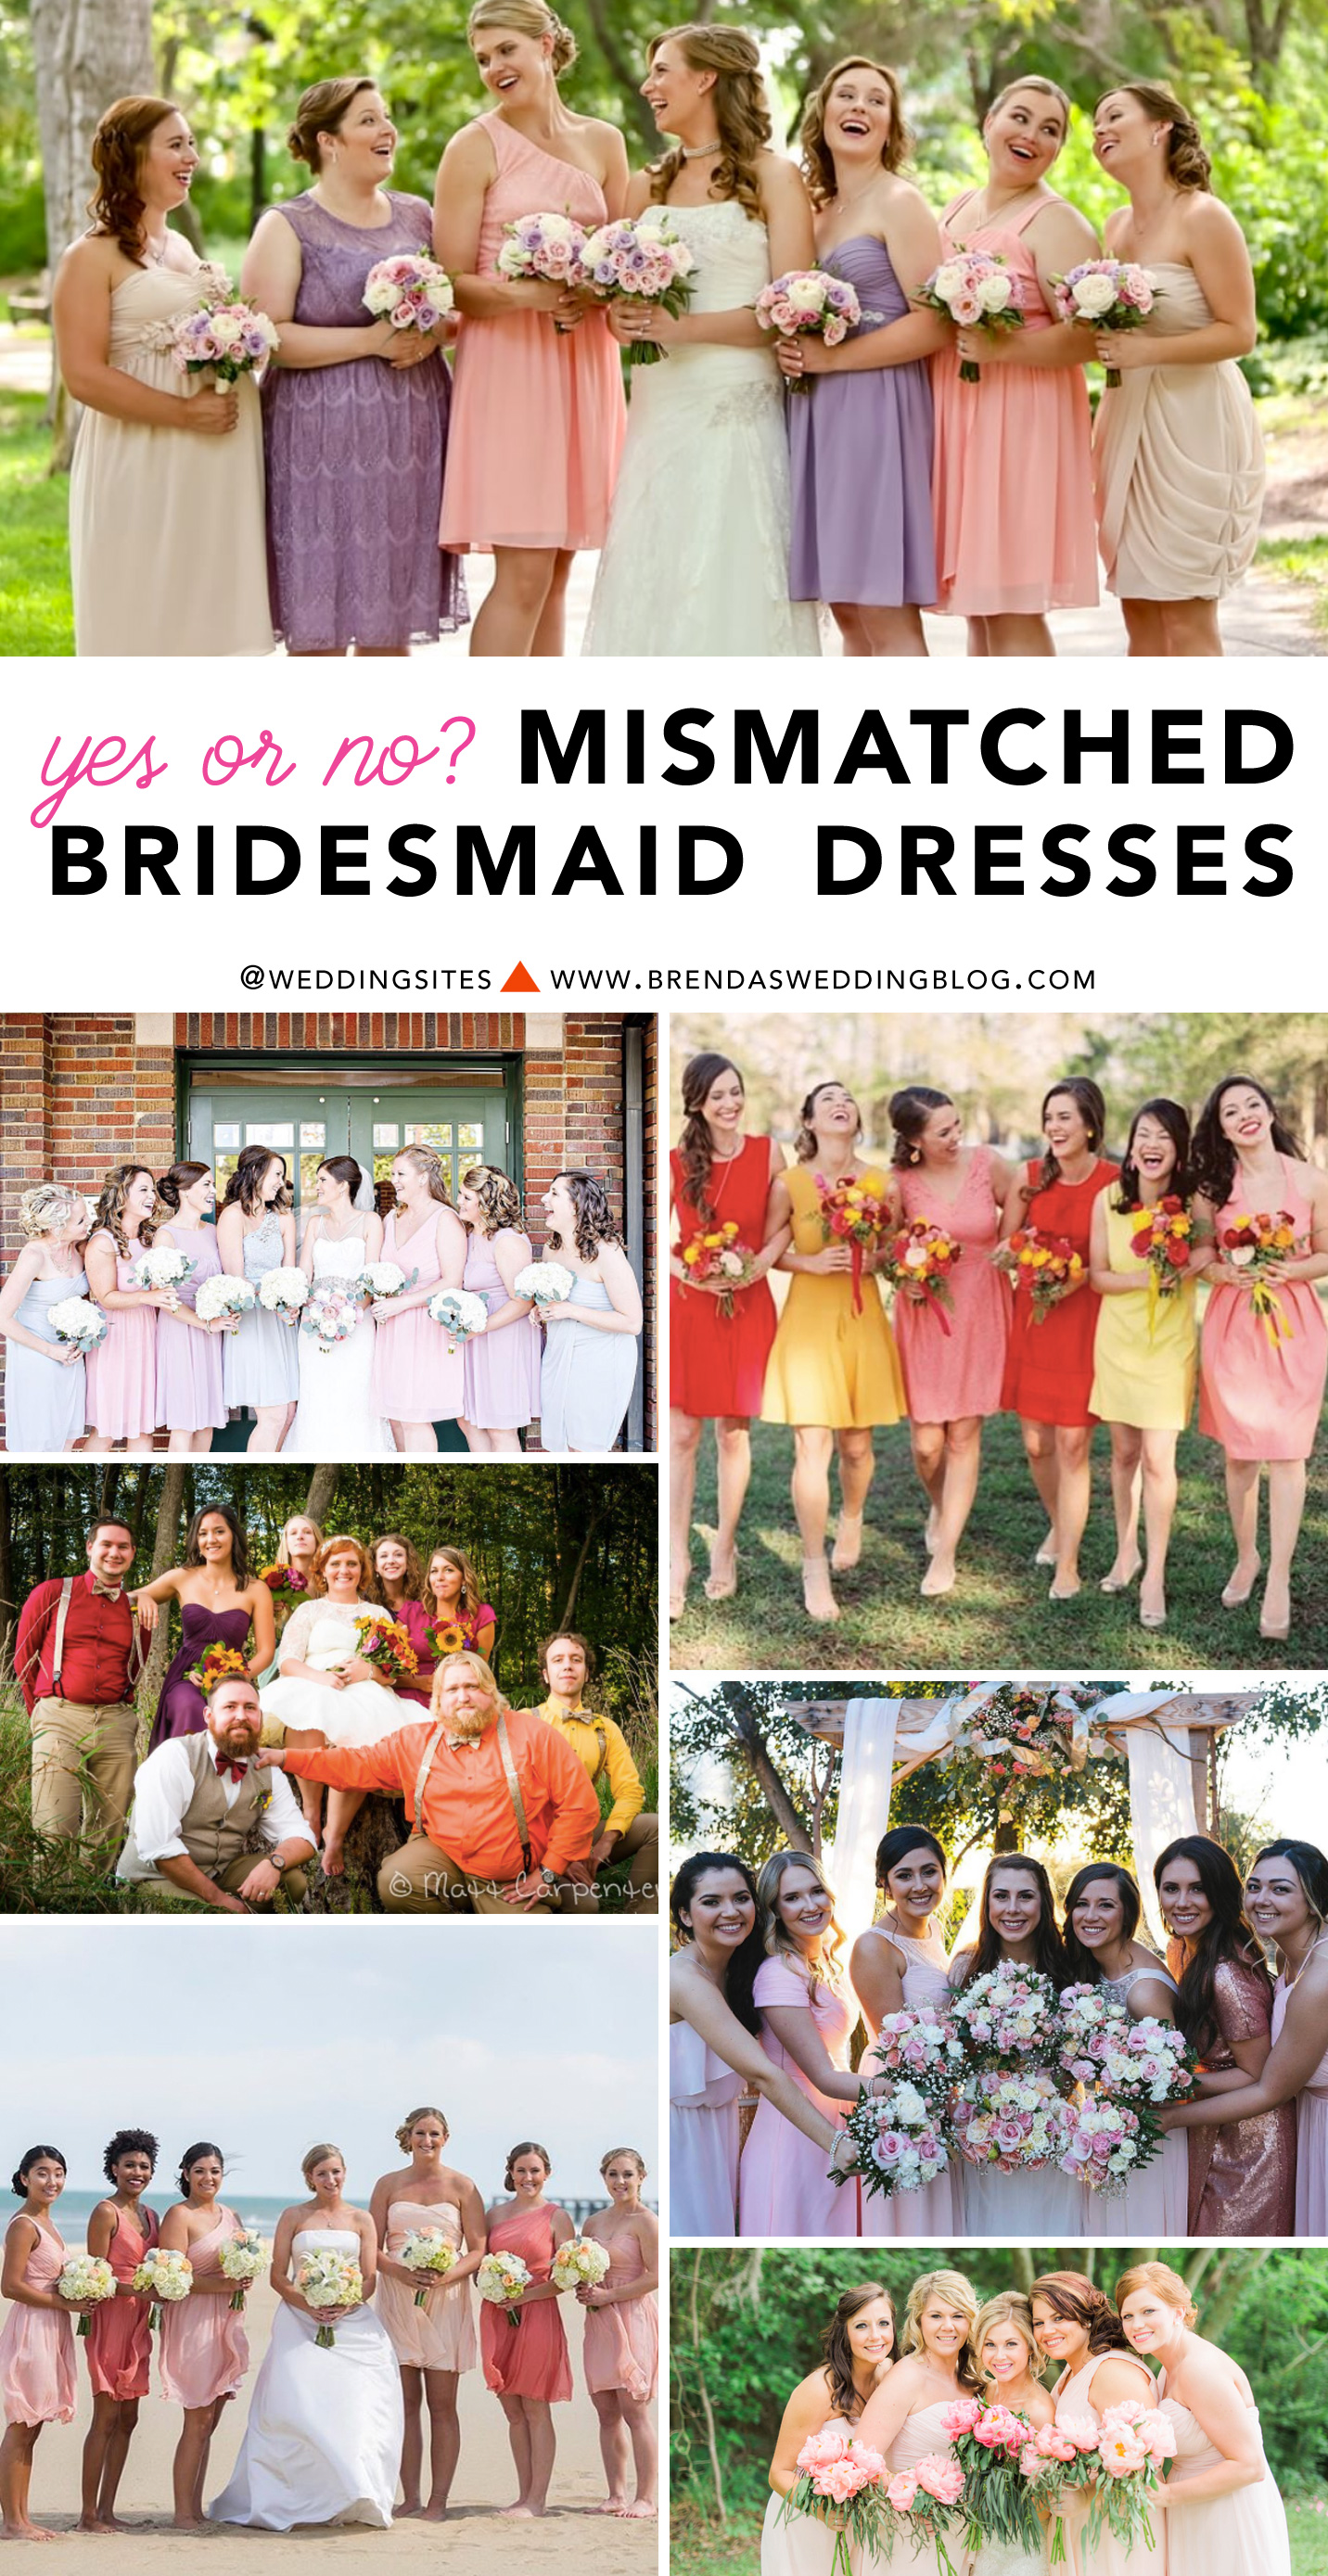 The Hot Wedding Trend : Mismatched Bridesmaid Dresses - are you on team yes or no? Click to see 5 ways to pull off this look with your Bridesmaids for your Wedding / as seen on www.BrendasWeddingBlog.com